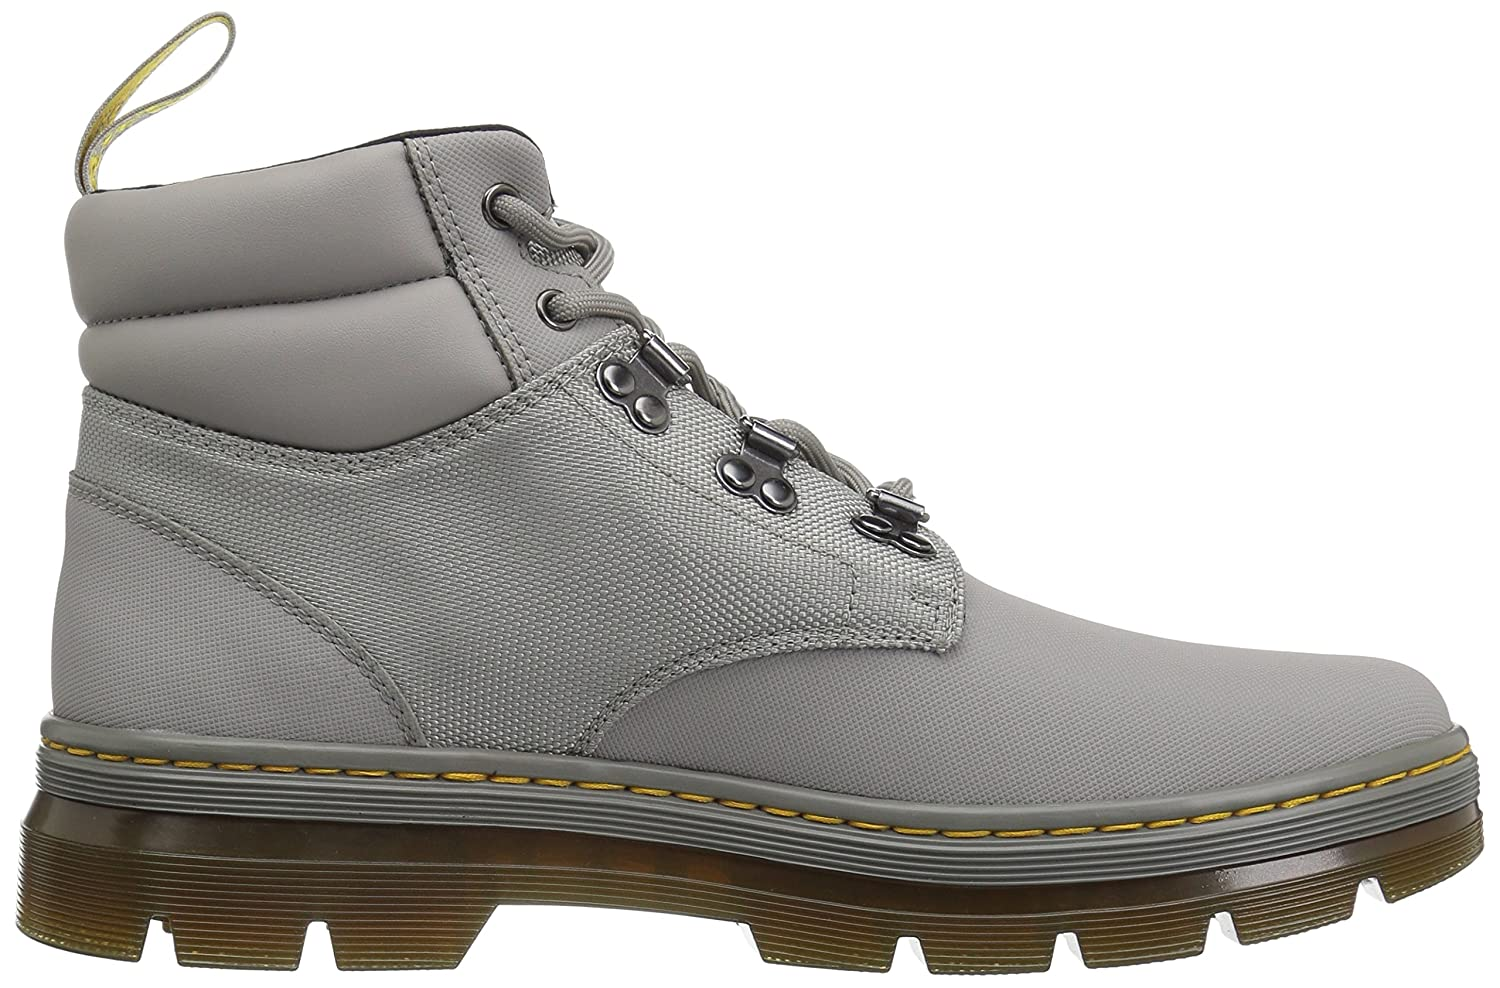 Dr. Martens Rakim Fashion UK Boot B0721F5QQK 4 Medium UK Fashion (US Women's 6 US)|Grey b89912